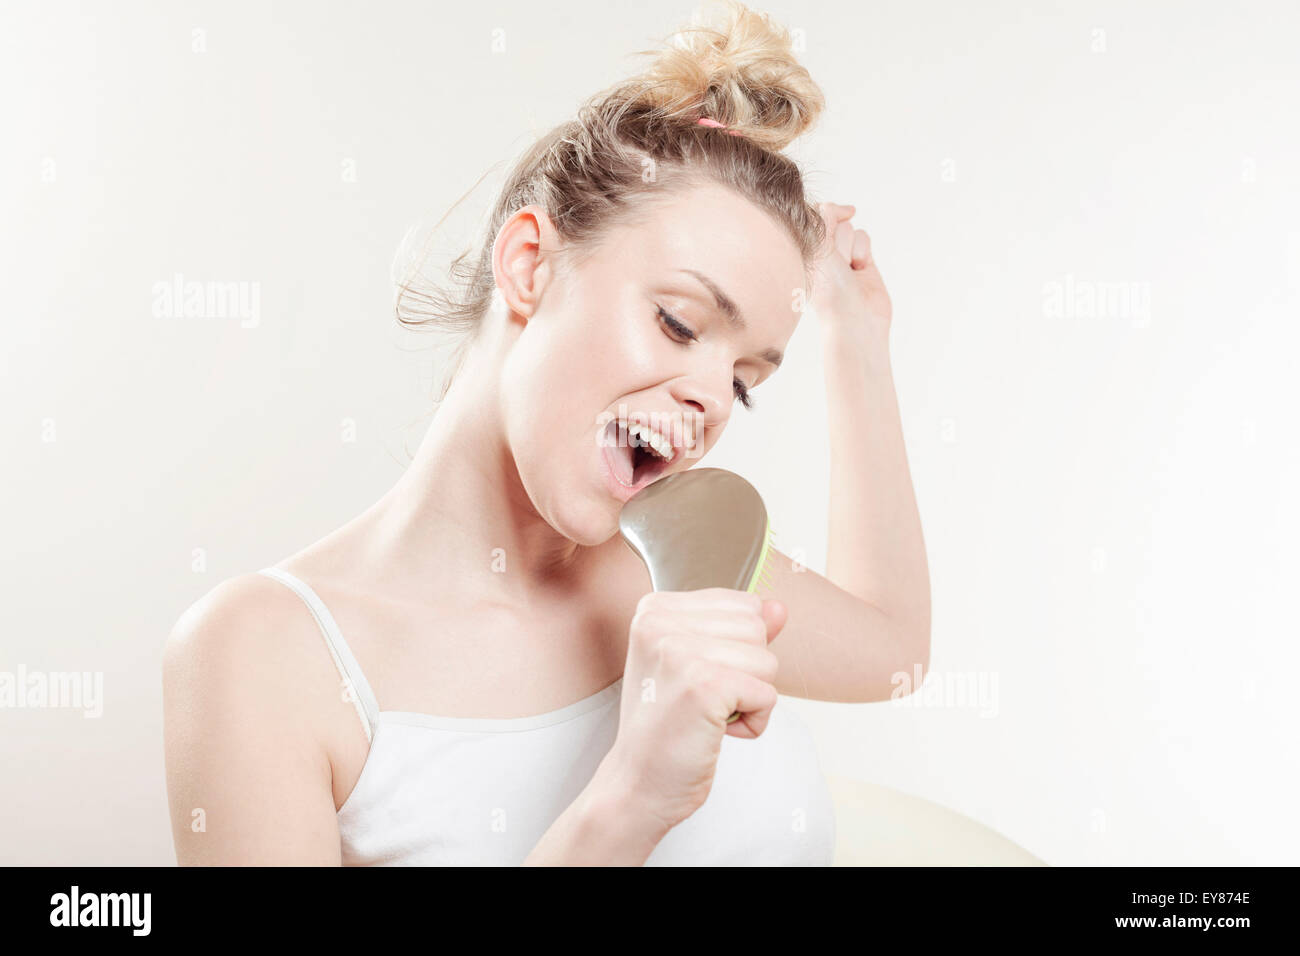 Young woman singing into hairbrush Photo Stock